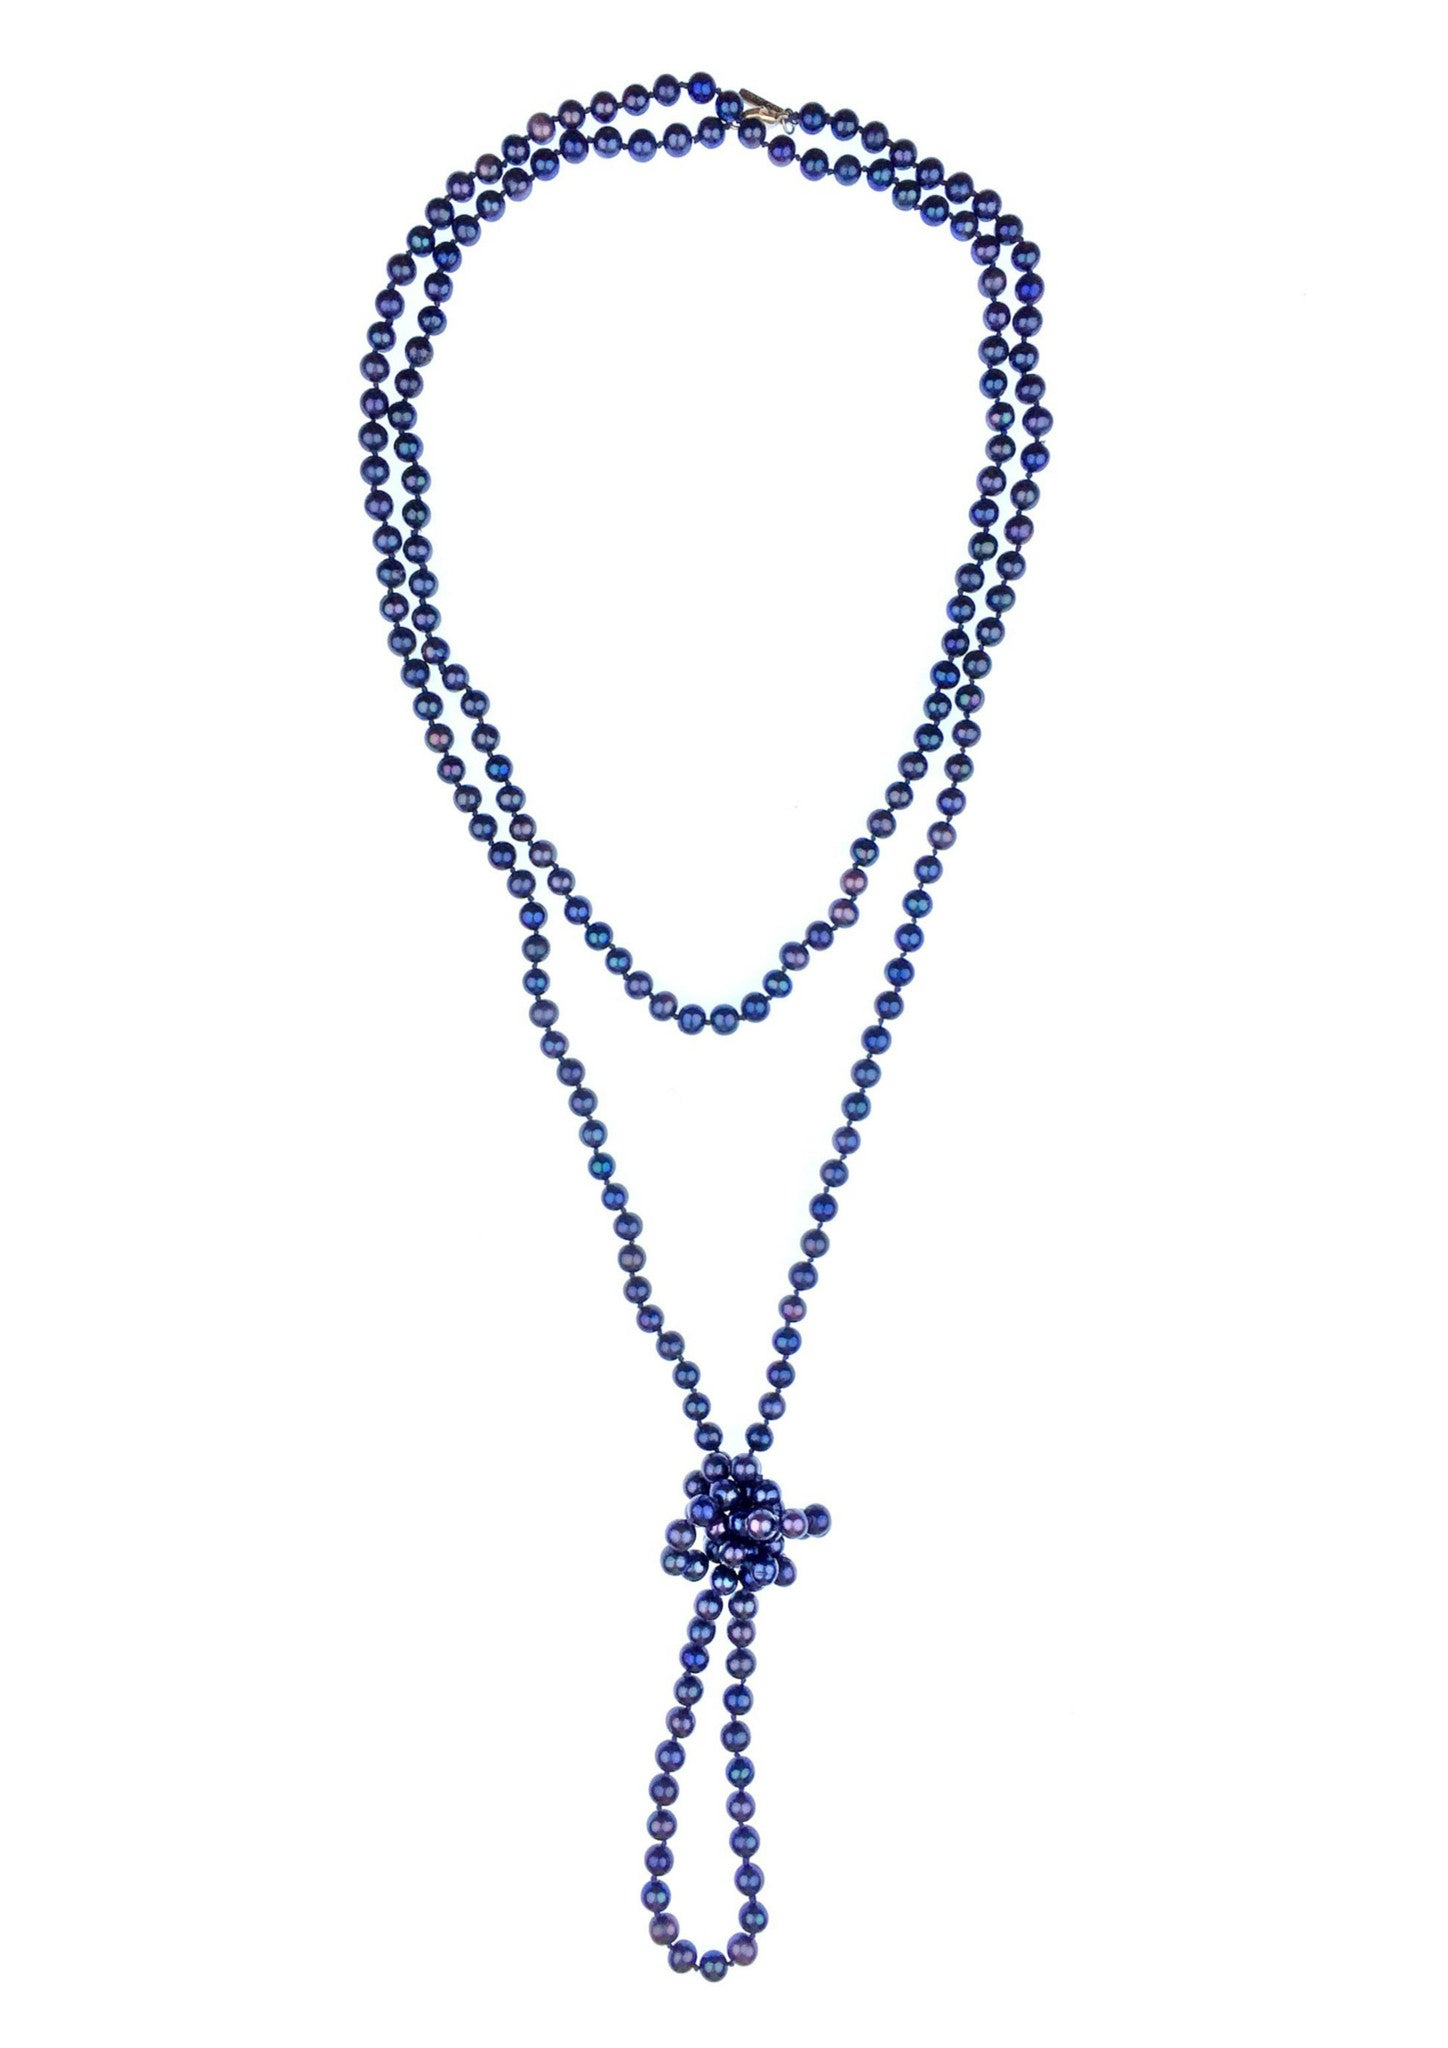 Blue Bounty Pearl Necklace JARED JAMIN